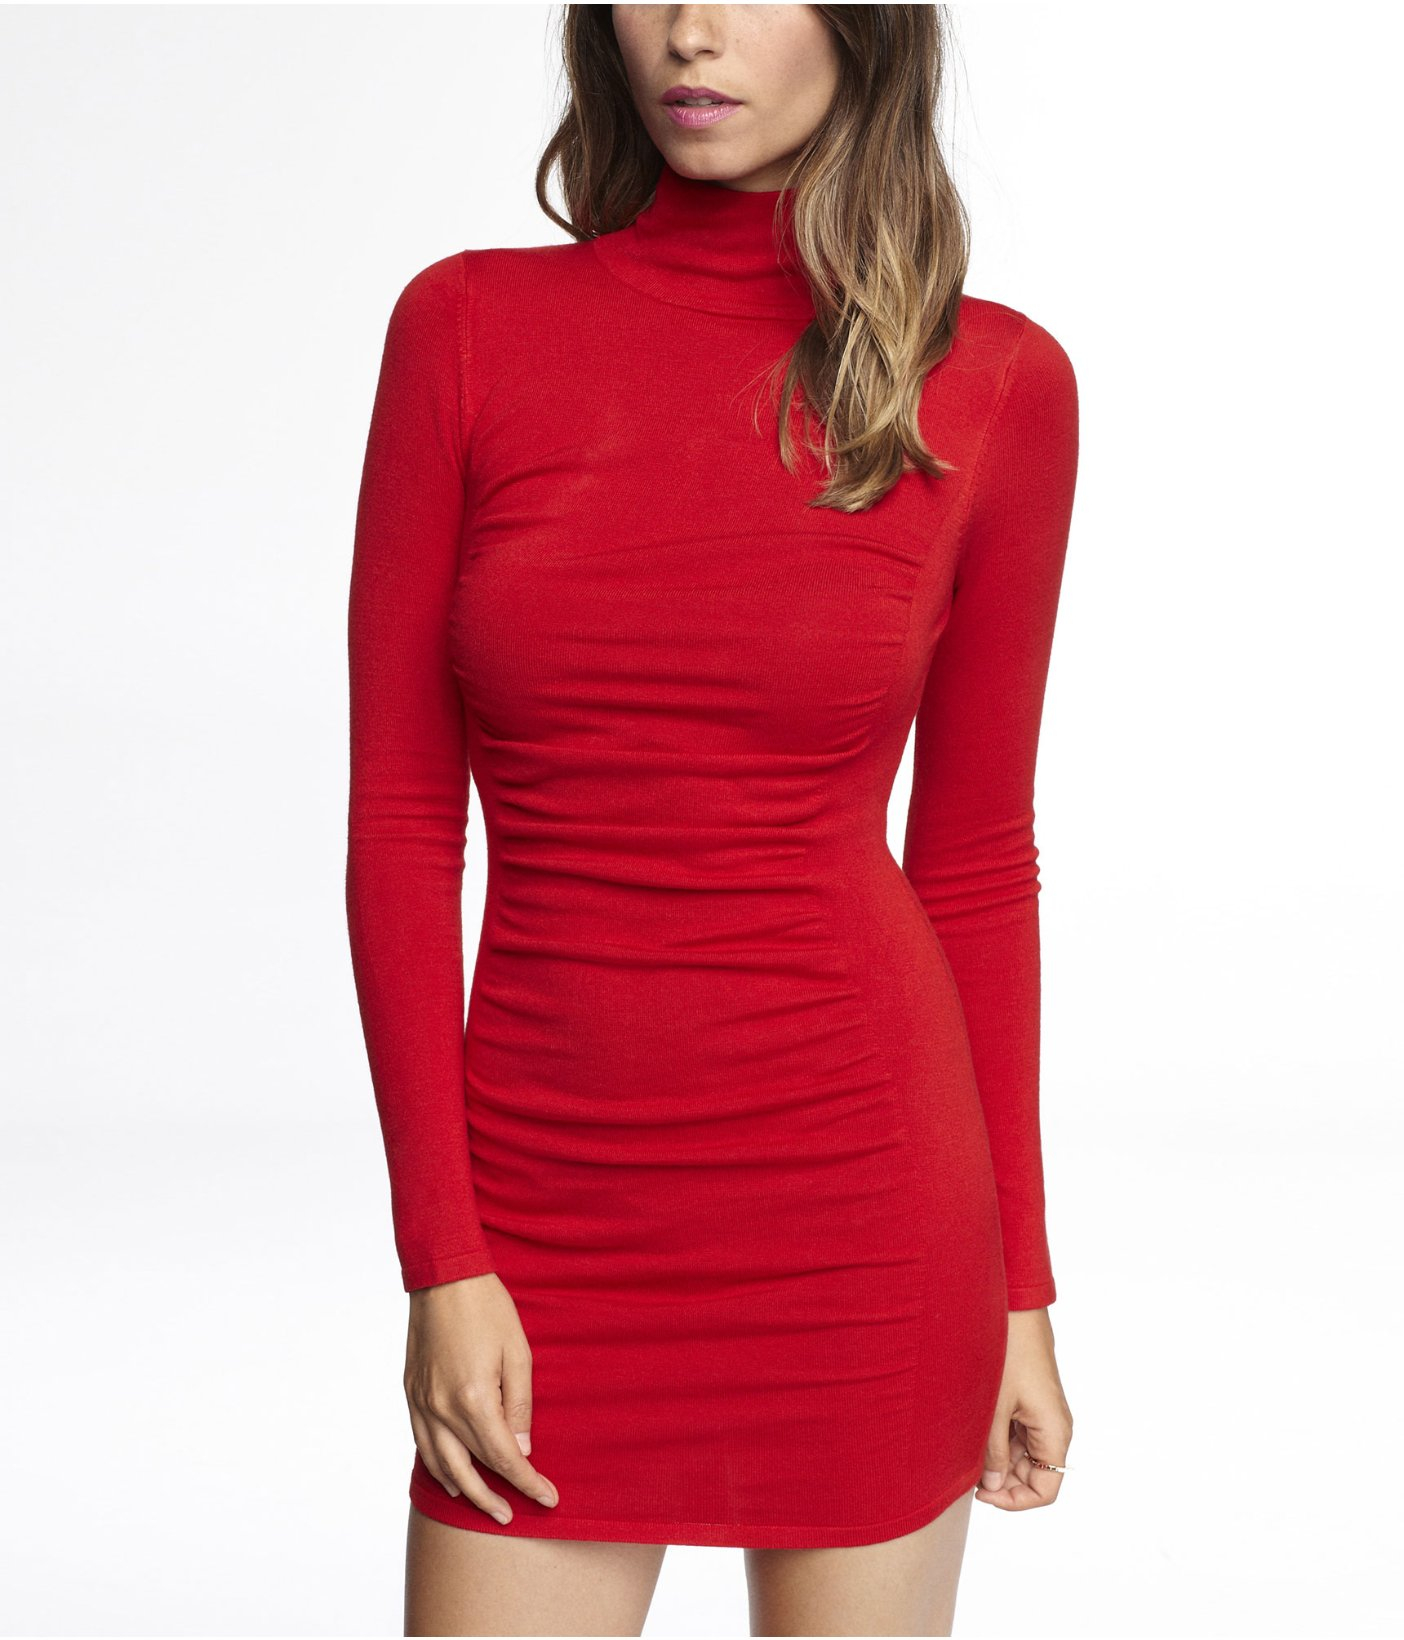 Express Mock Neck Ruched Sweater Dress in Red   Lyst